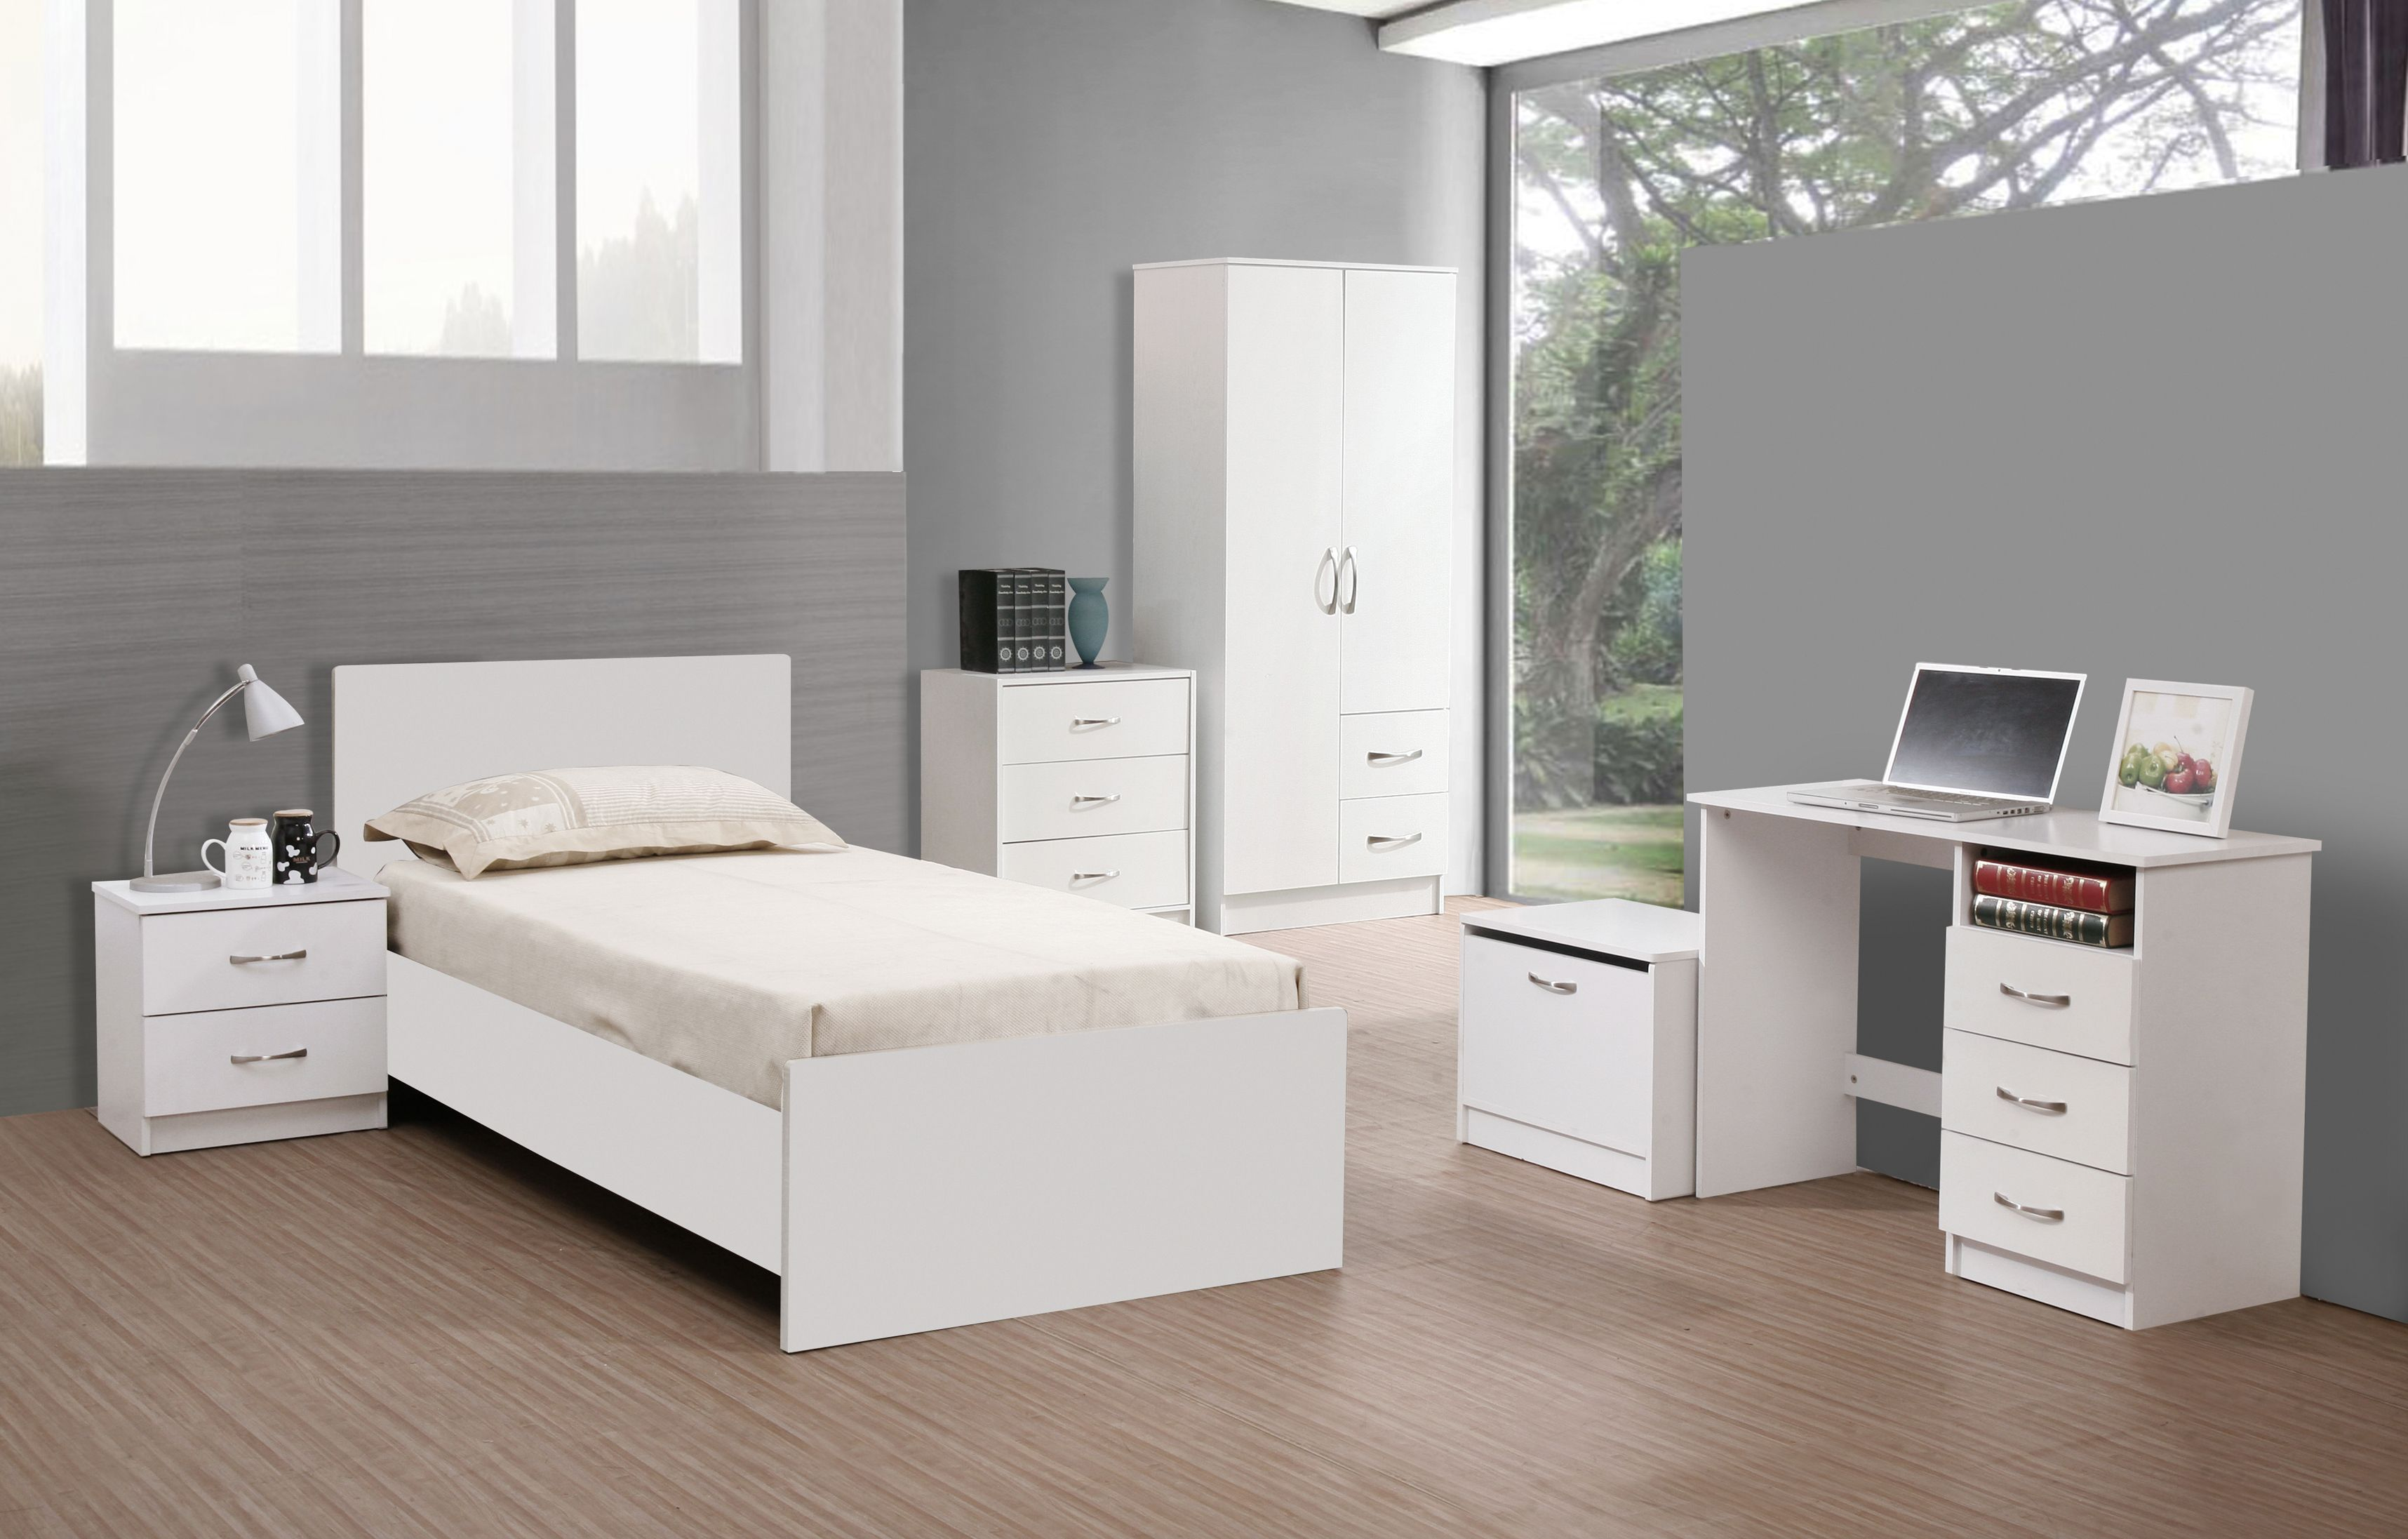 25 Elegant White Wood Bedroom Furniture Sets In 2020 White